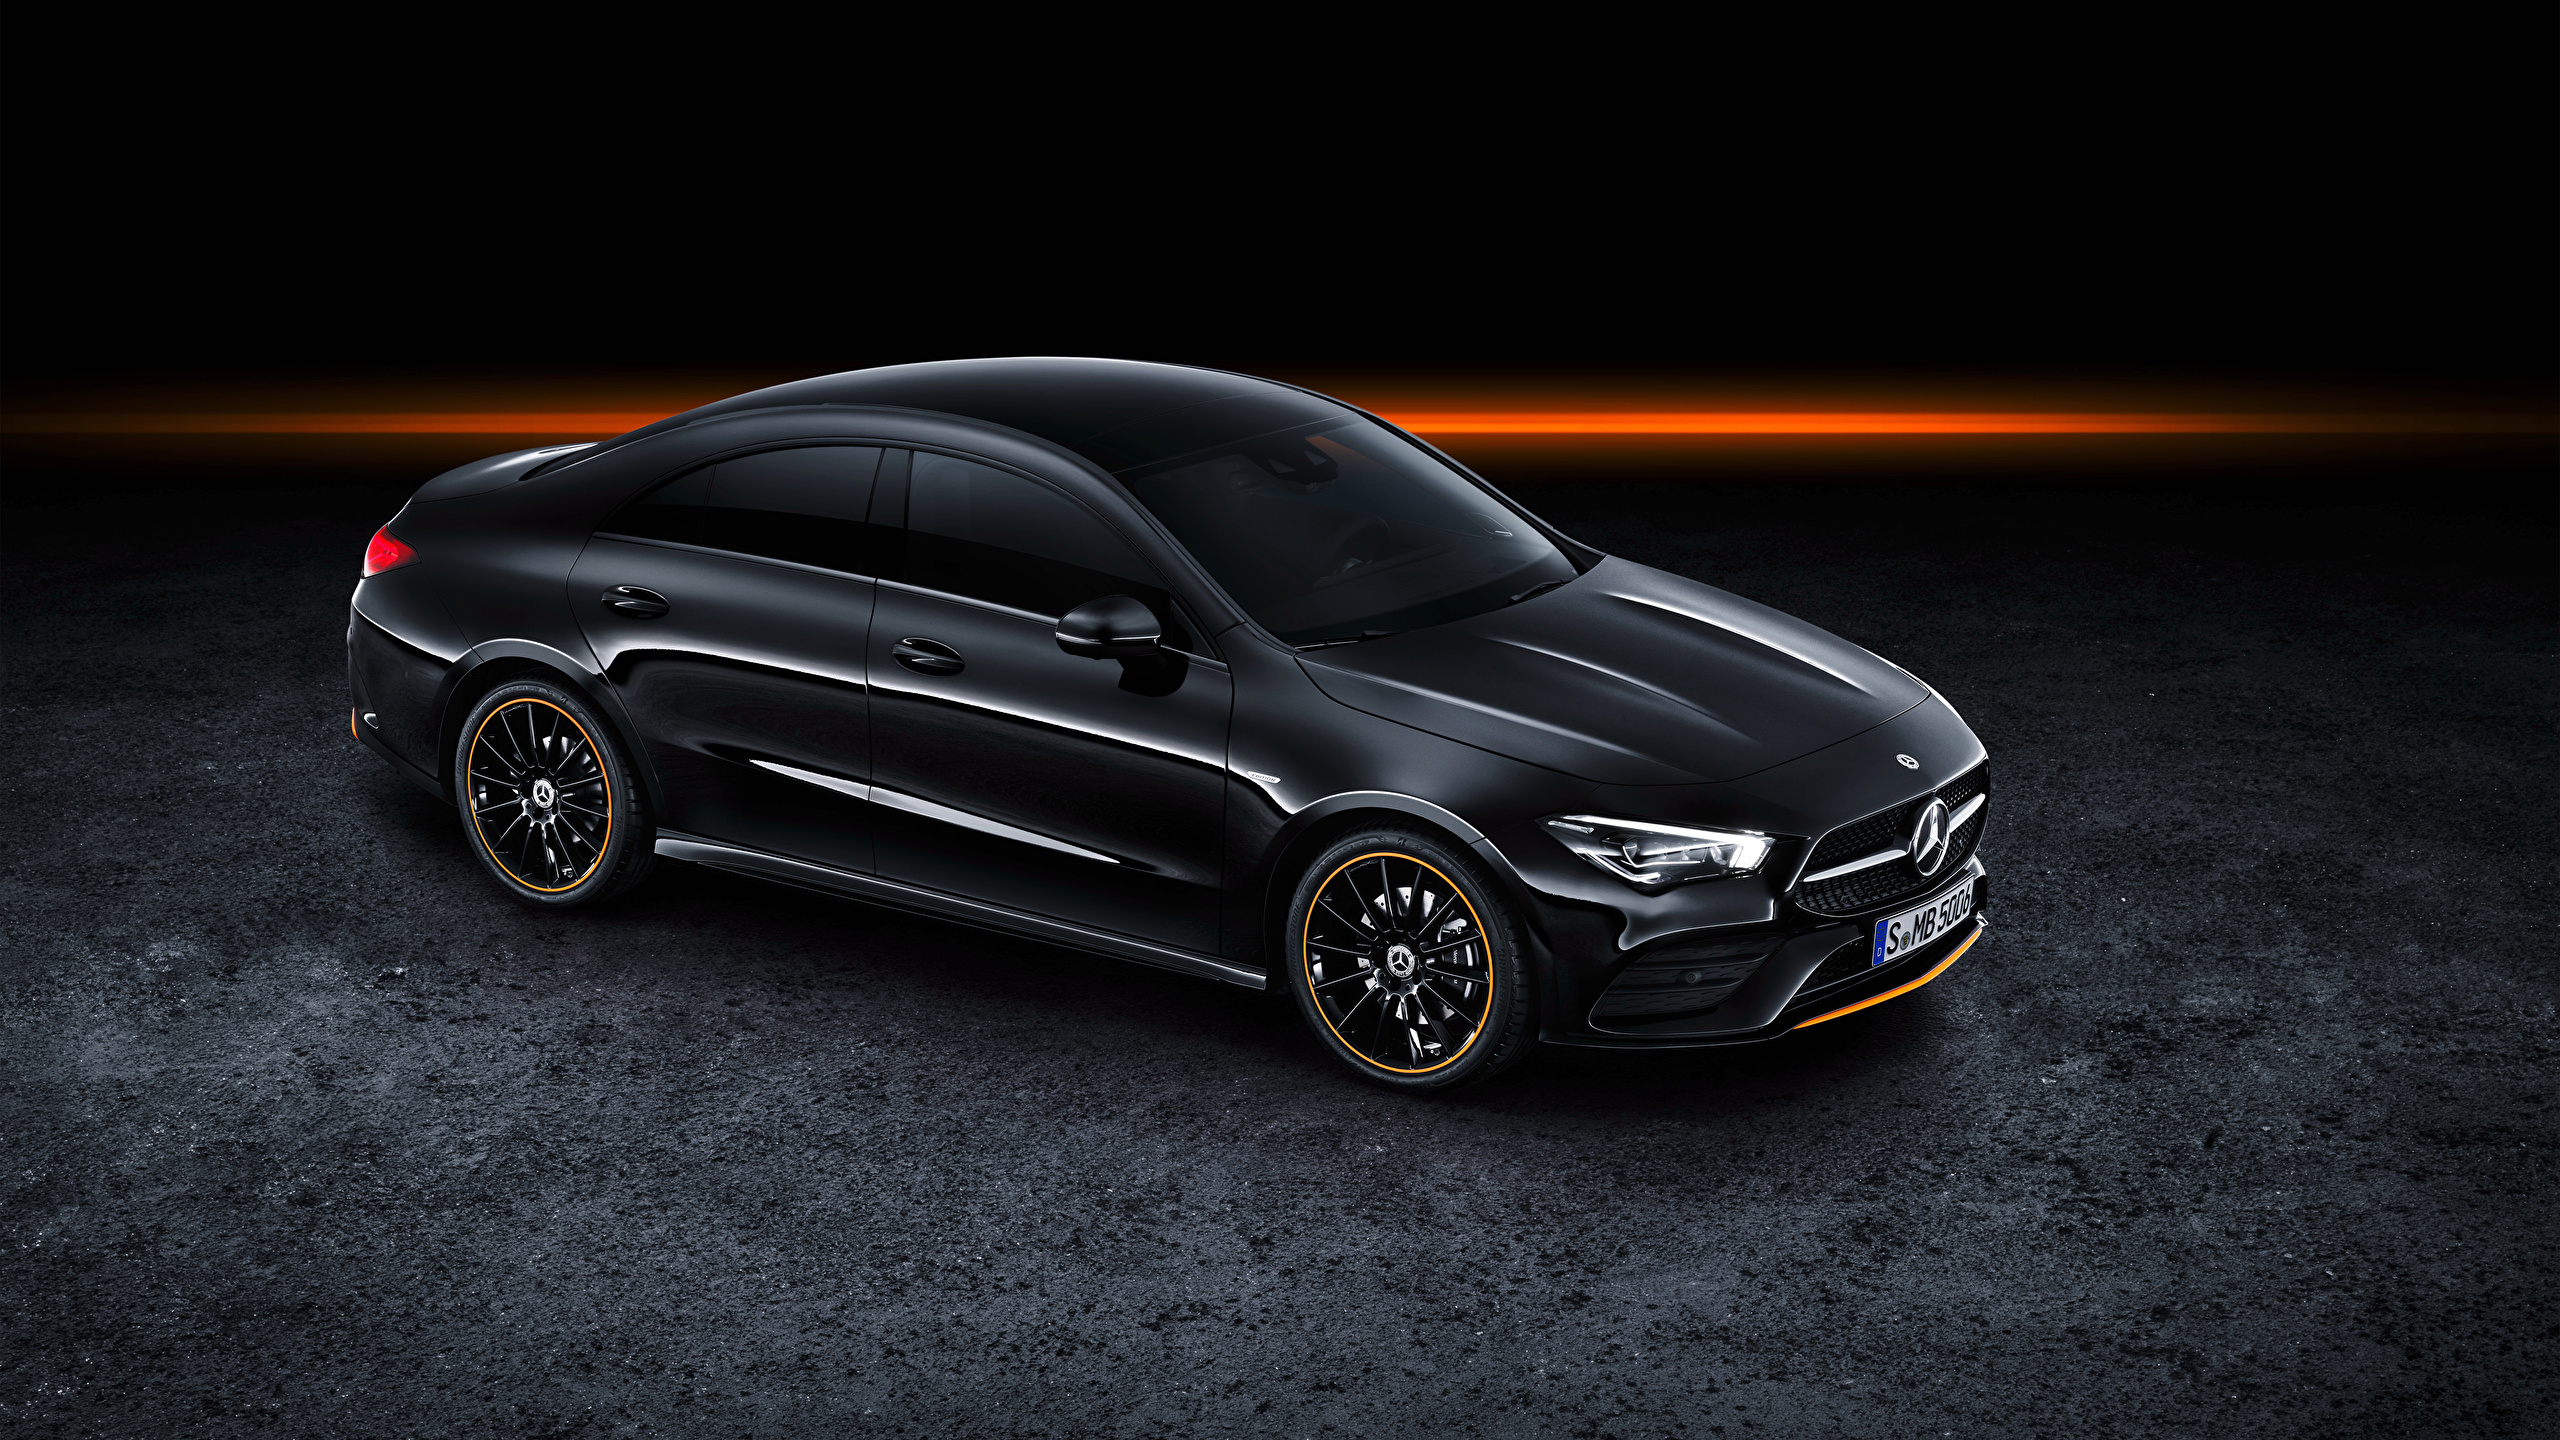 Pictures Mercedes Benz 2019 Cla 250 Amg Line Edition 2560x1440